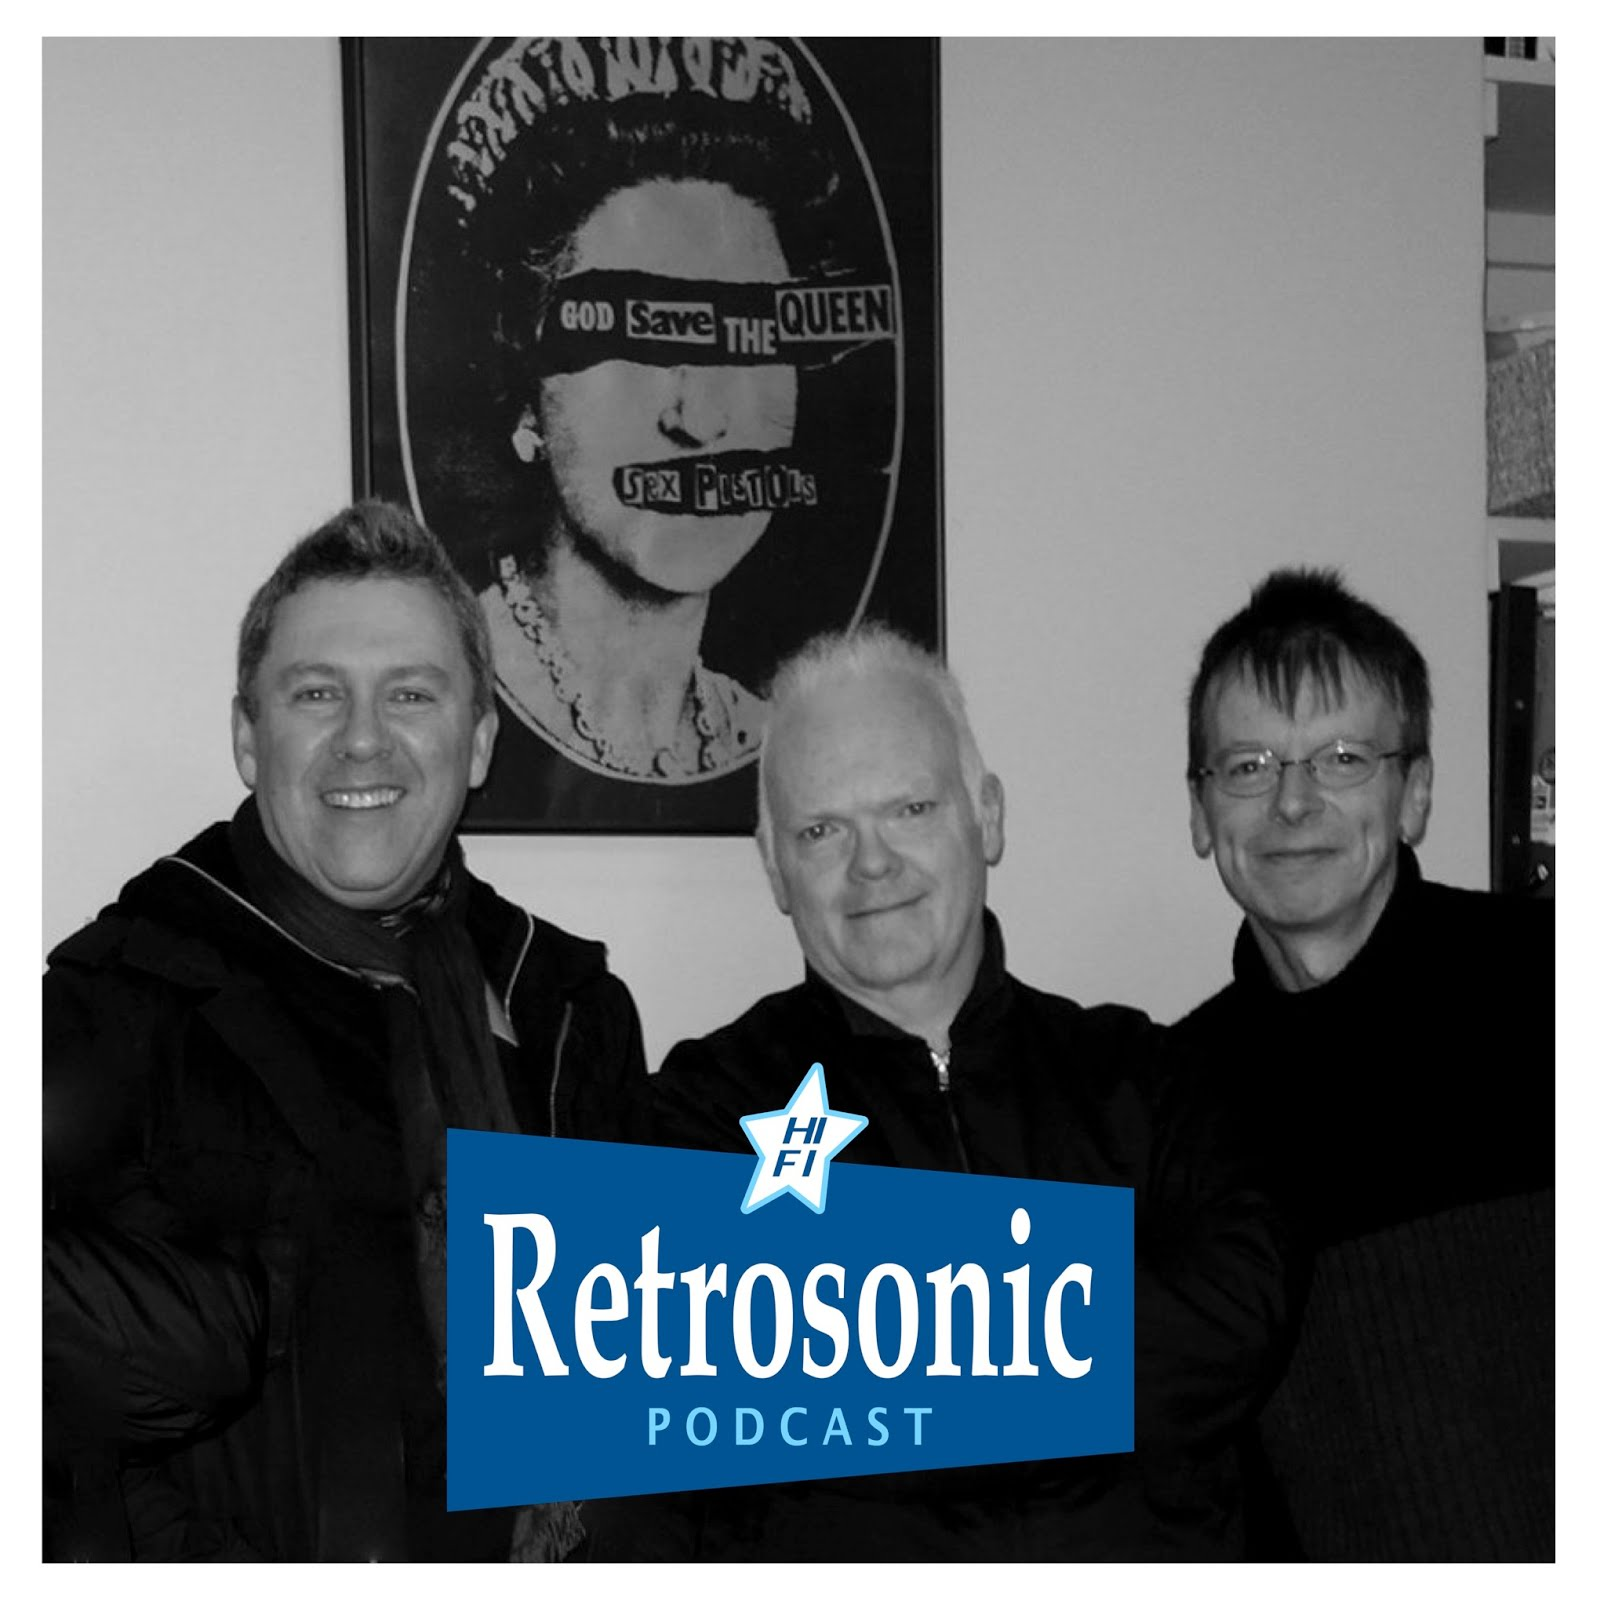 Retrosonic Podcast with The Everlasting Yeah (ex-That Petrol Emotion/Undertones)